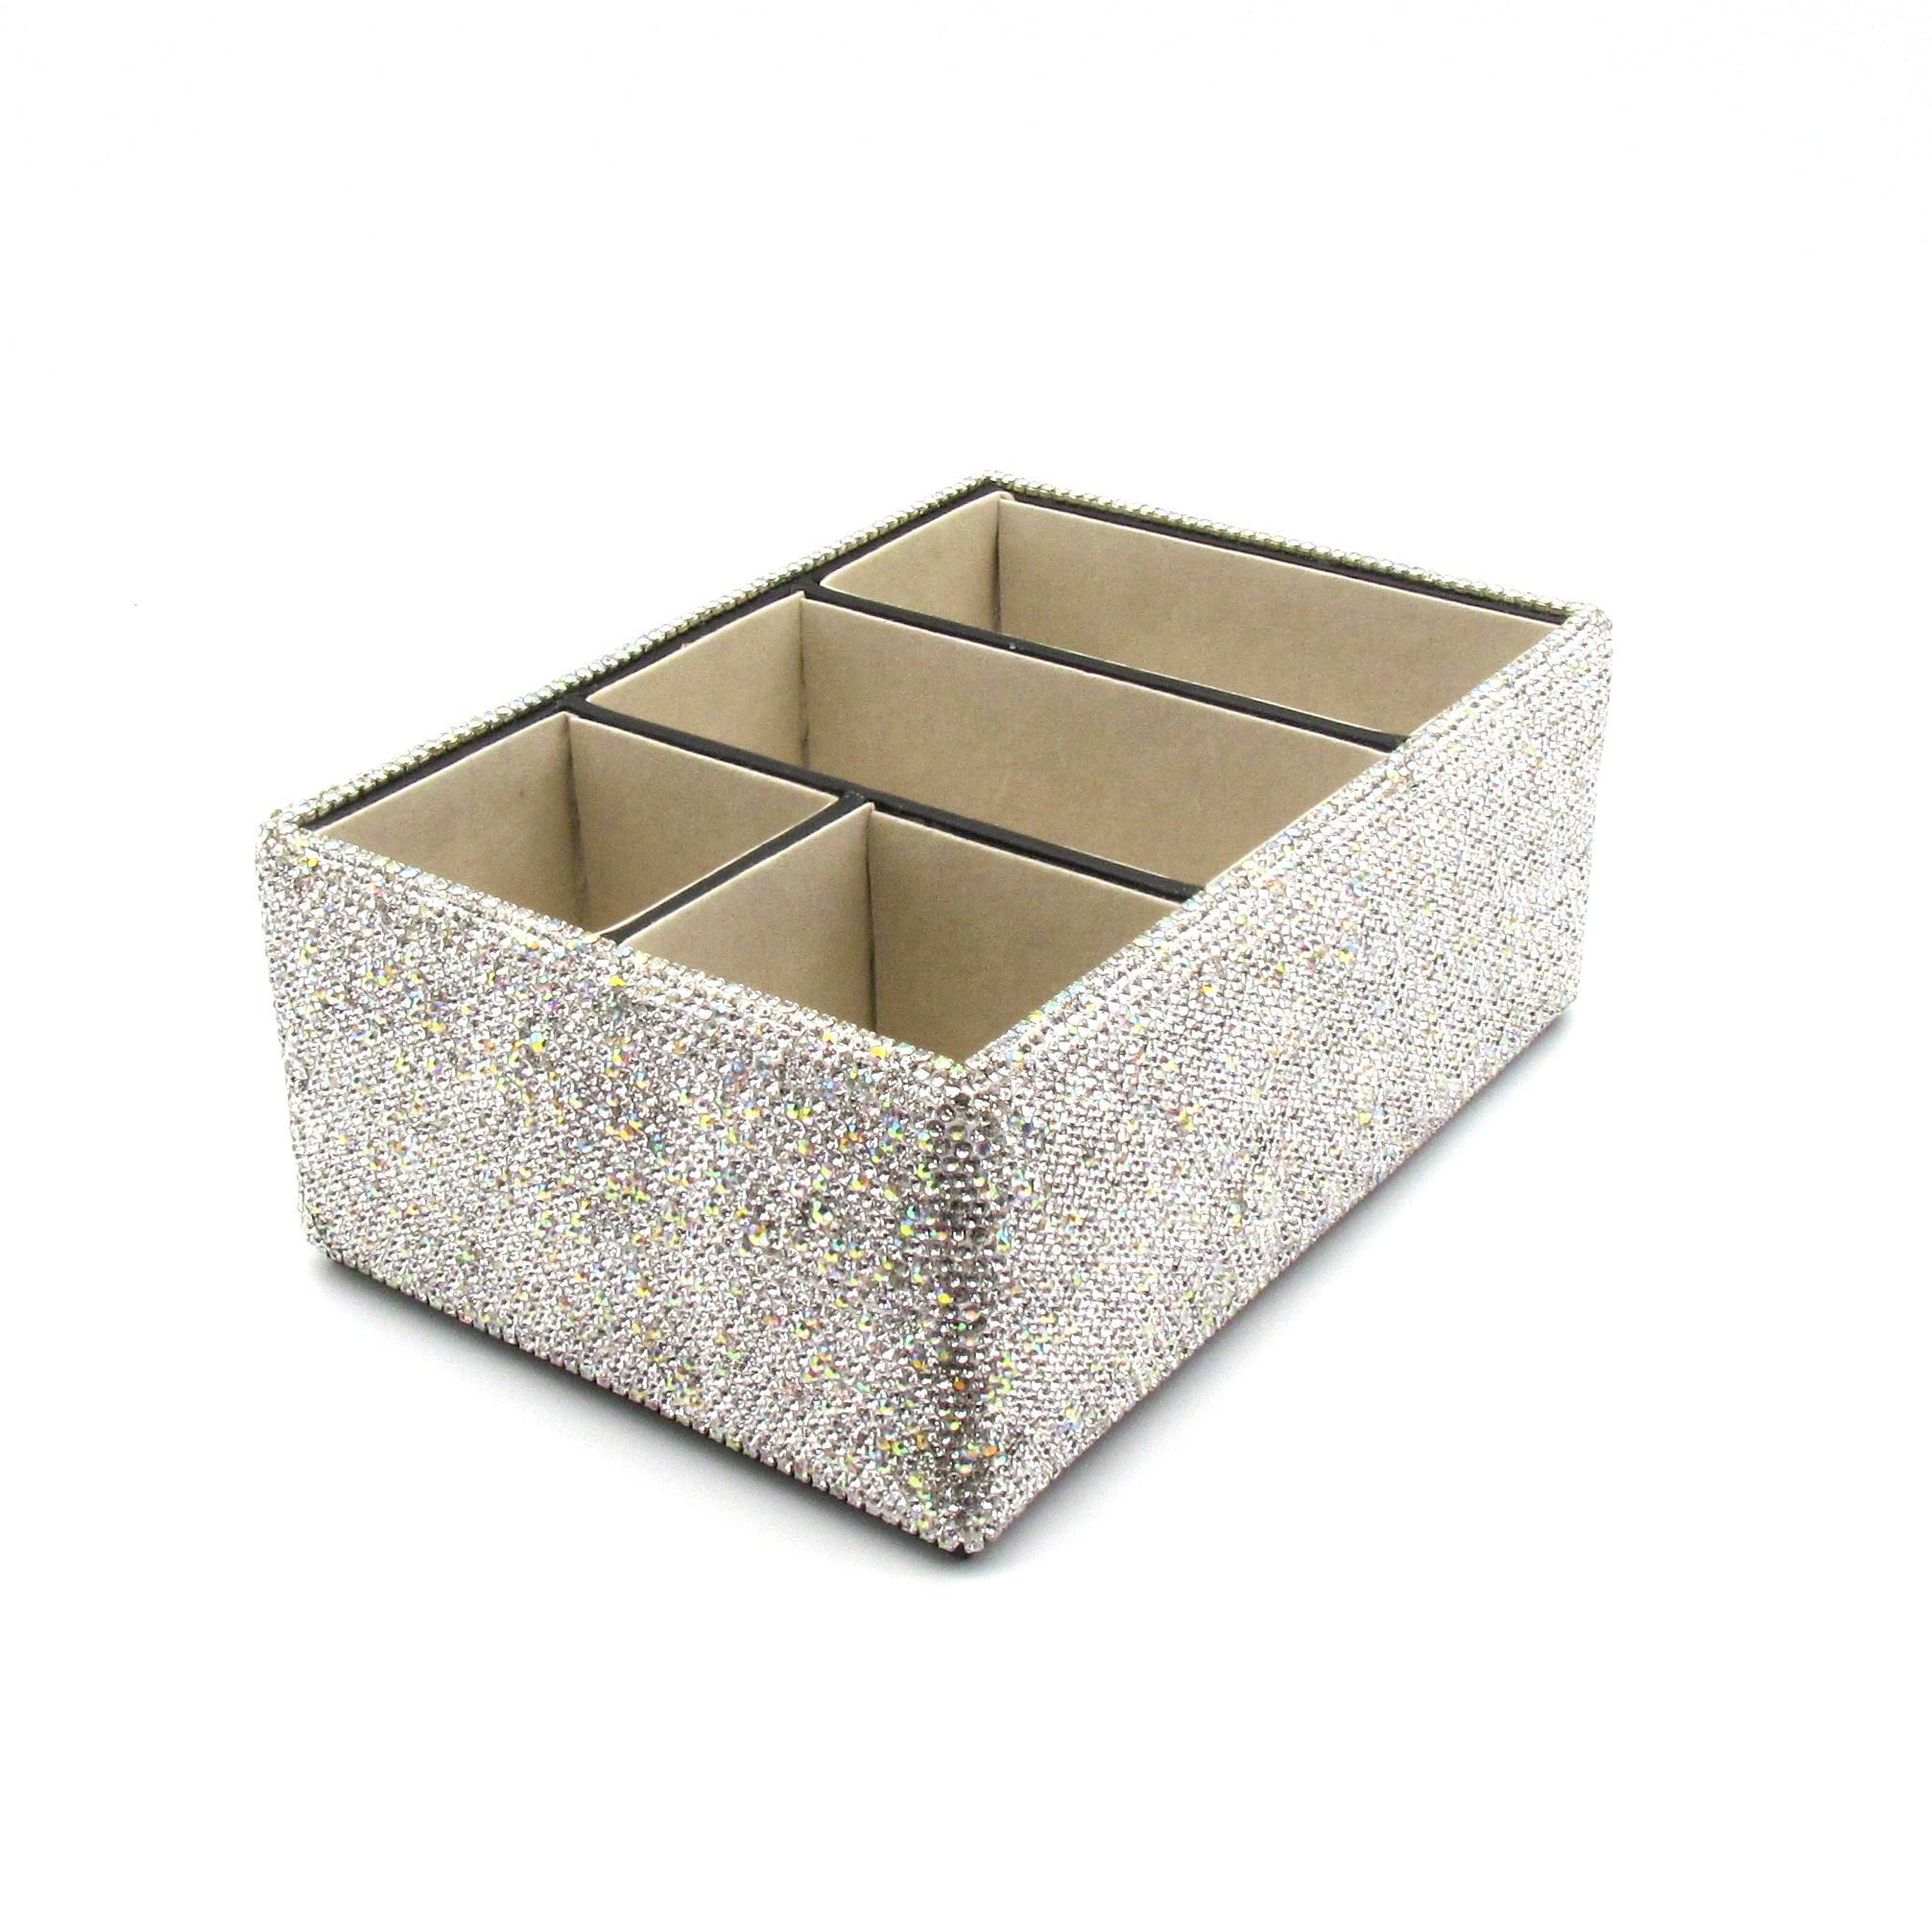 Handcraft  Rhinestone Storage Box